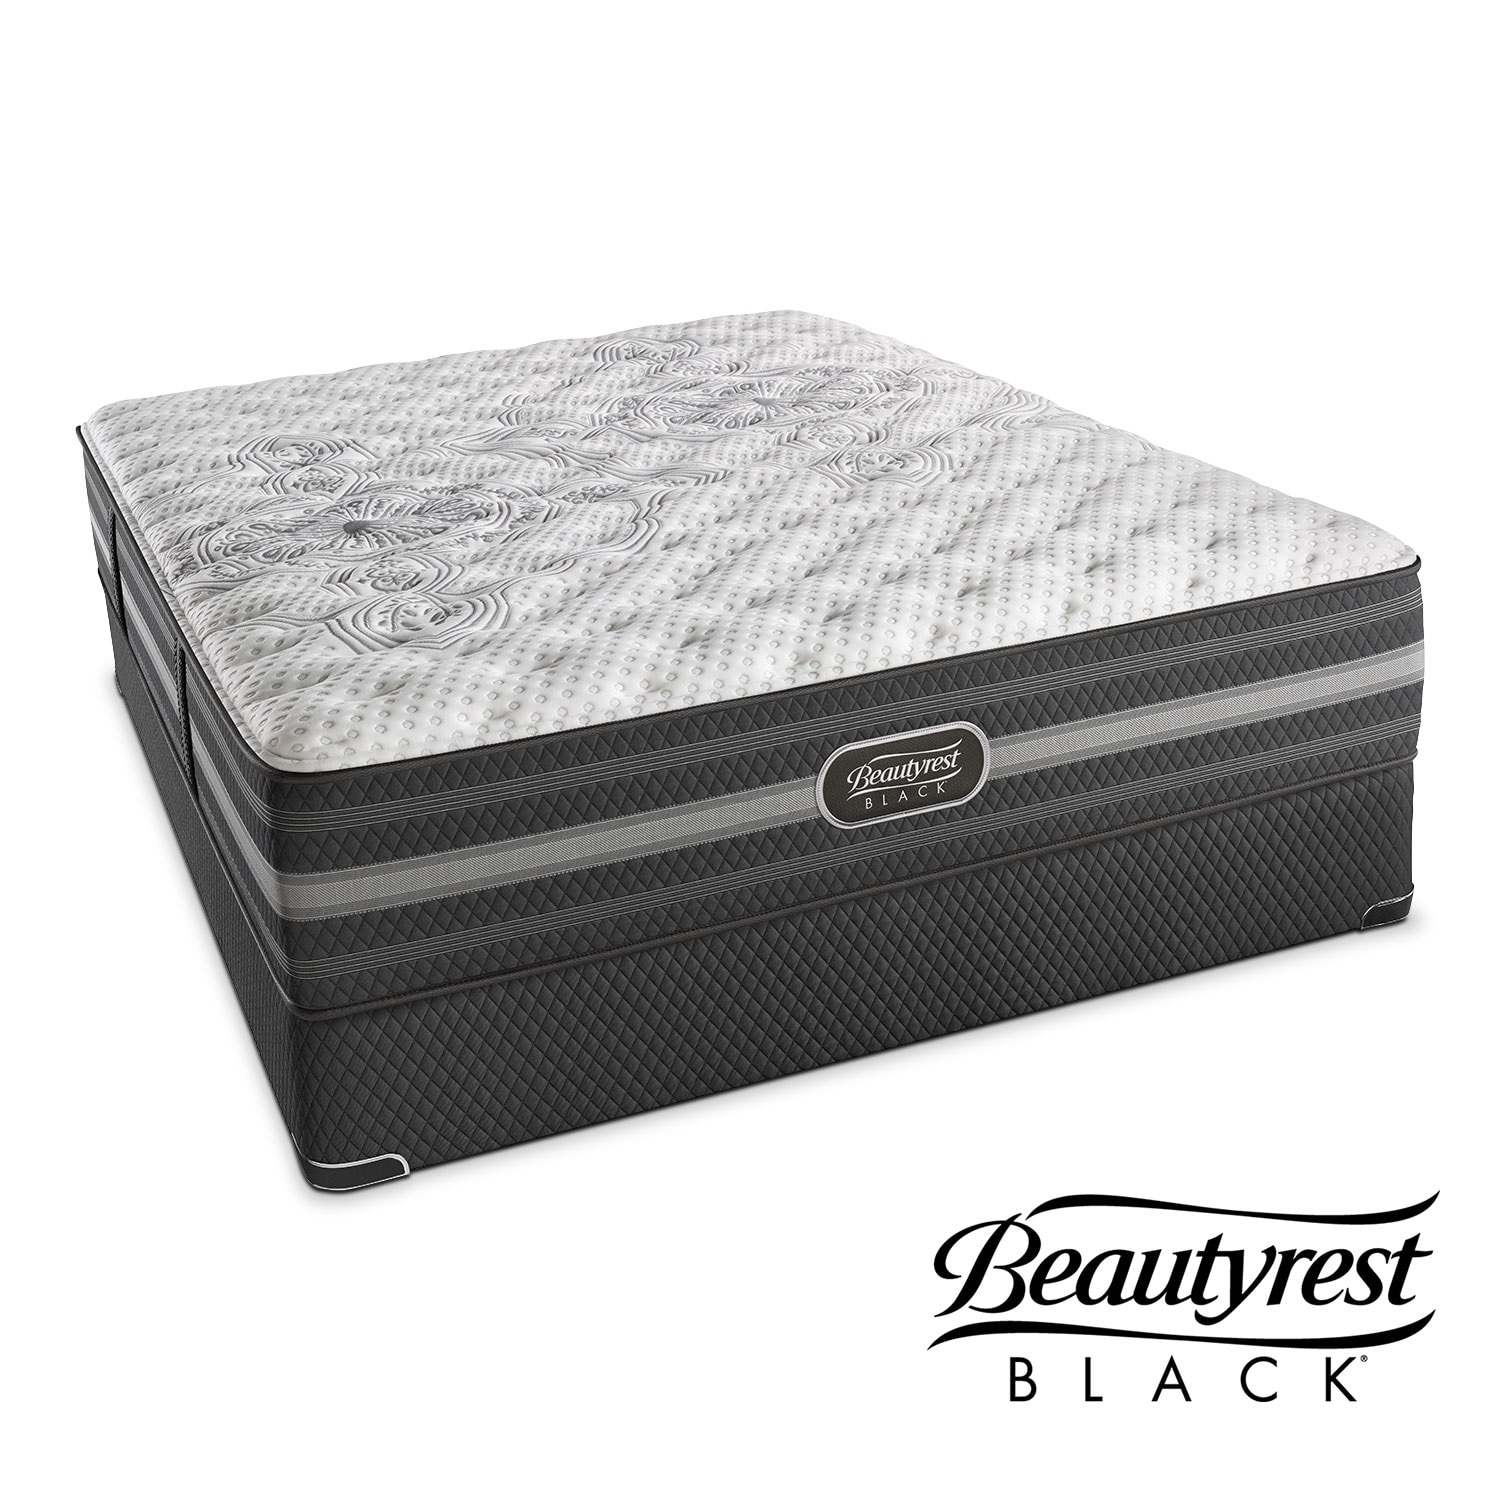 Mattresses and Bedding - Calista Extra-Firm King Mattress and Split Foundation Set